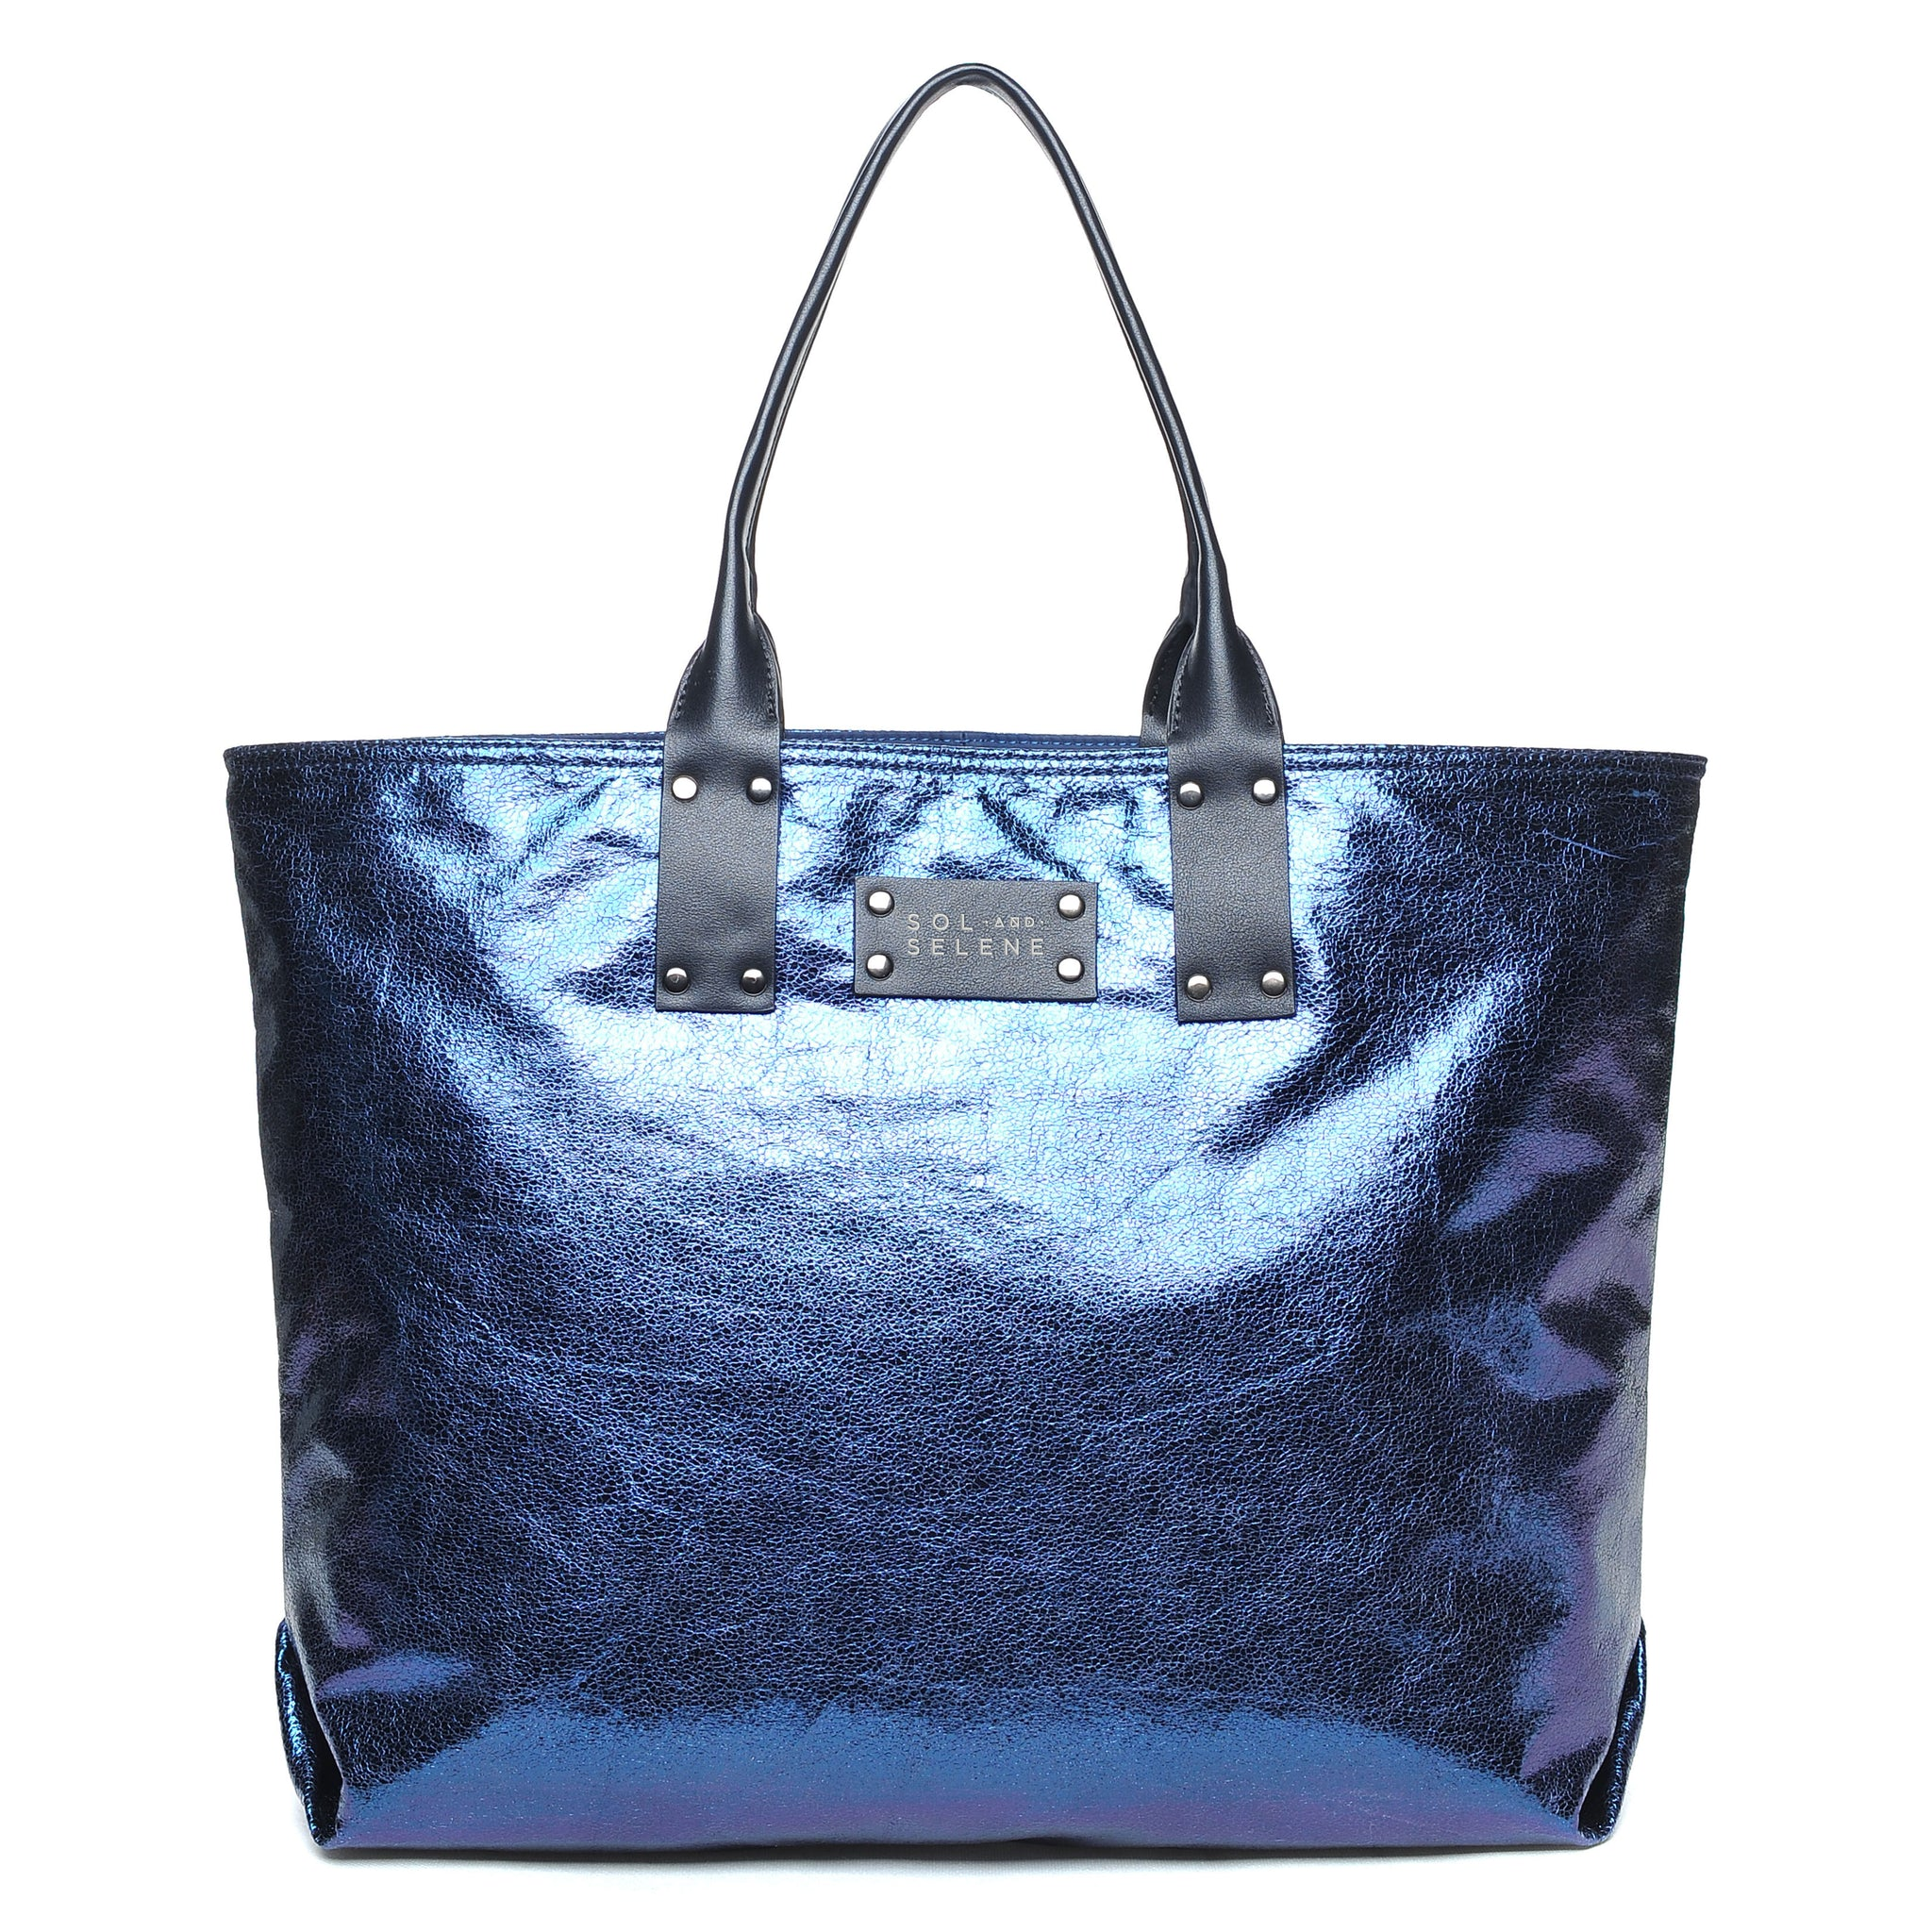 Sol & Selene IT Girl Tote Metallic Navy Blue Bag